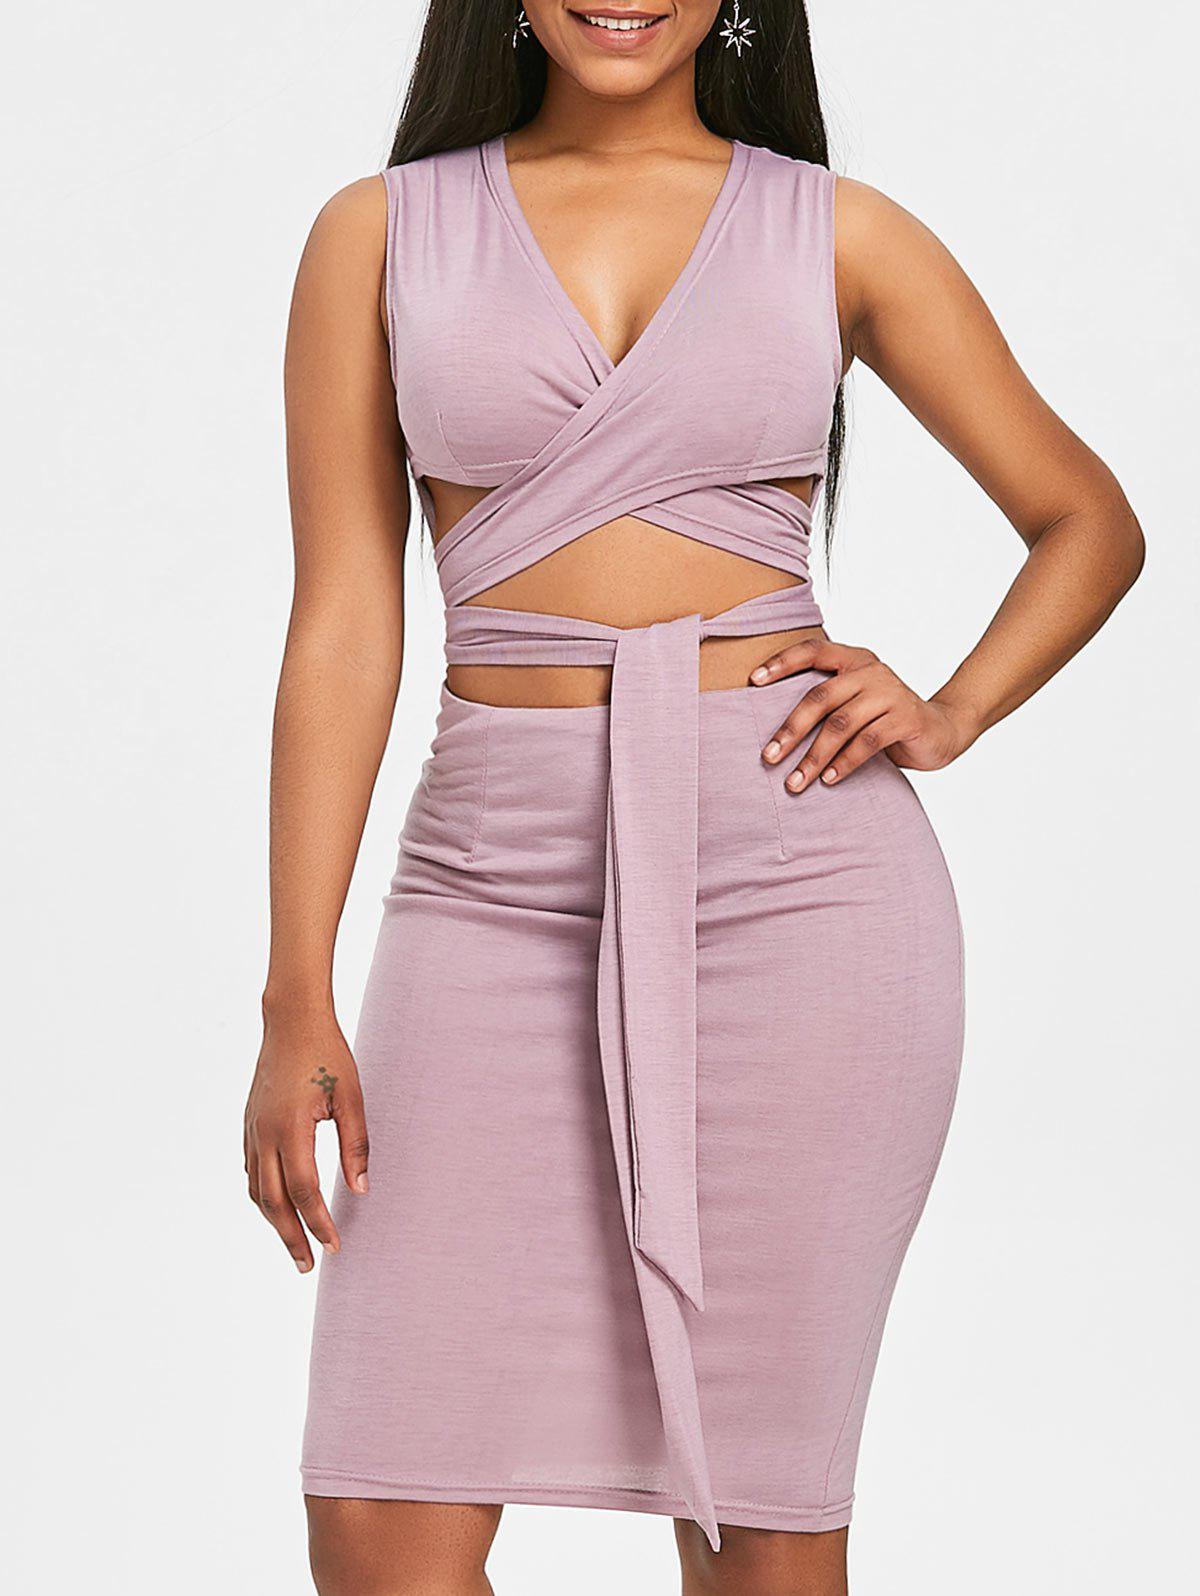 Plunging Cutout Sleeveless Dress - PURPLE M